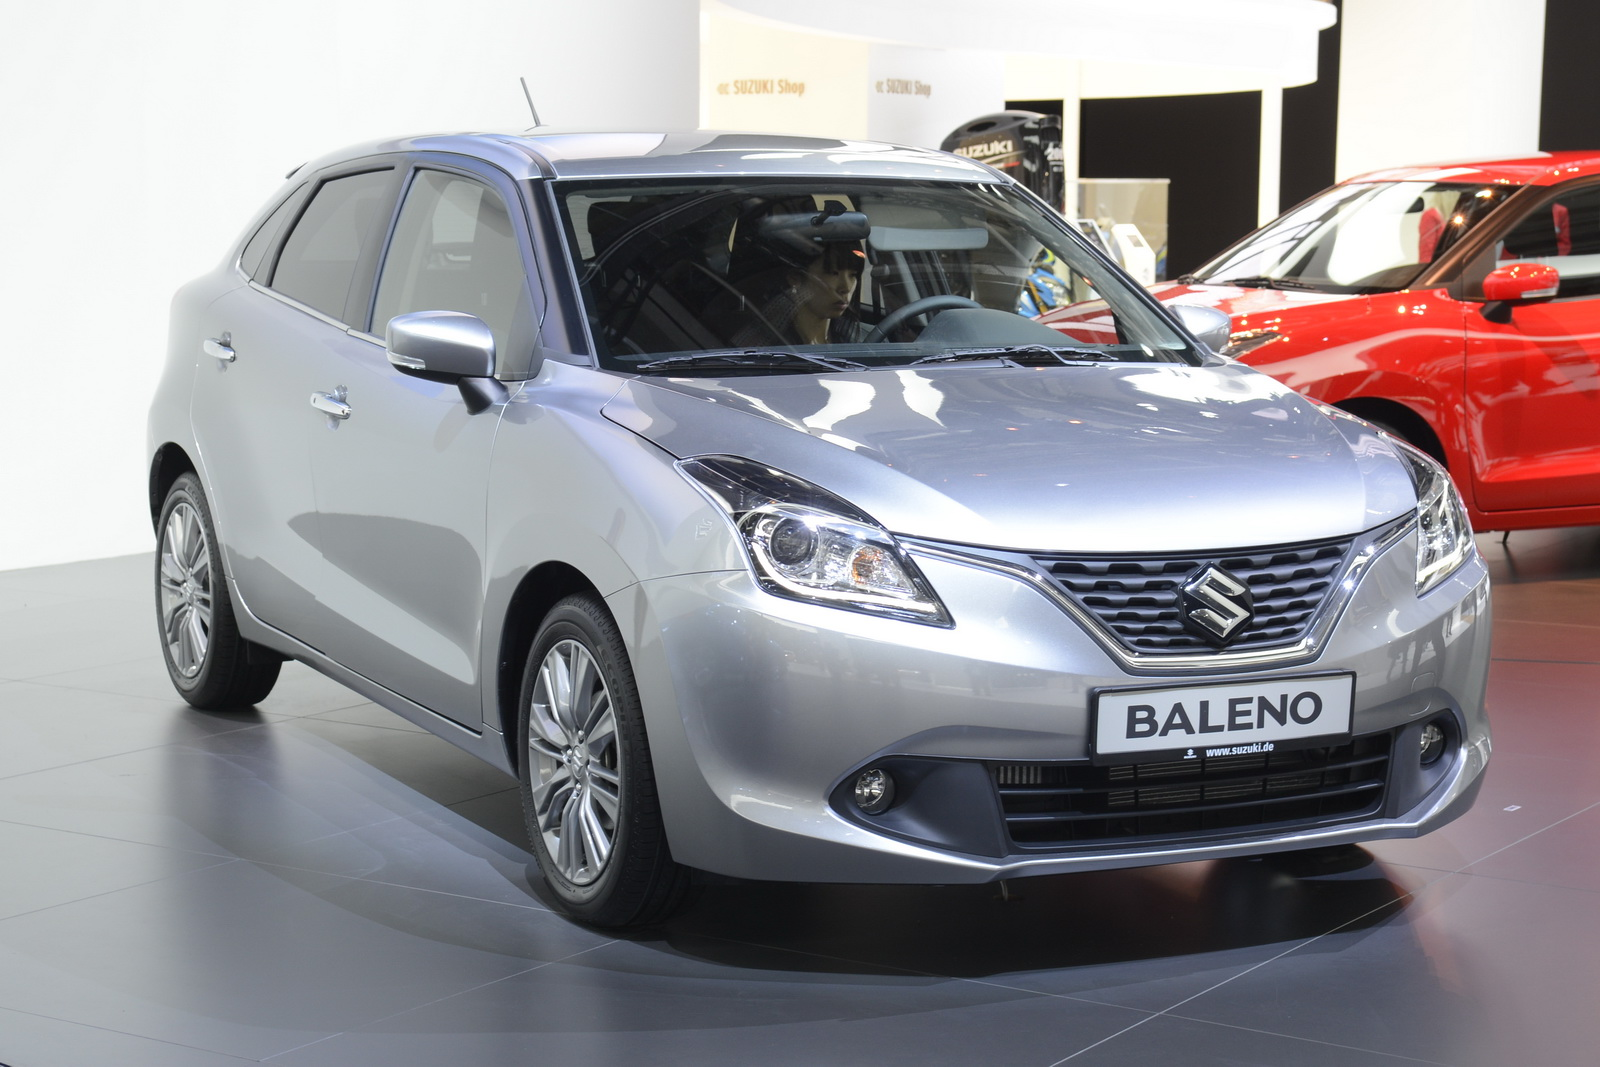 suzuki to bring new 2017 baleno at geneva motor show carscoops. Black Bedroom Furniture Sets. Home Design Ideas